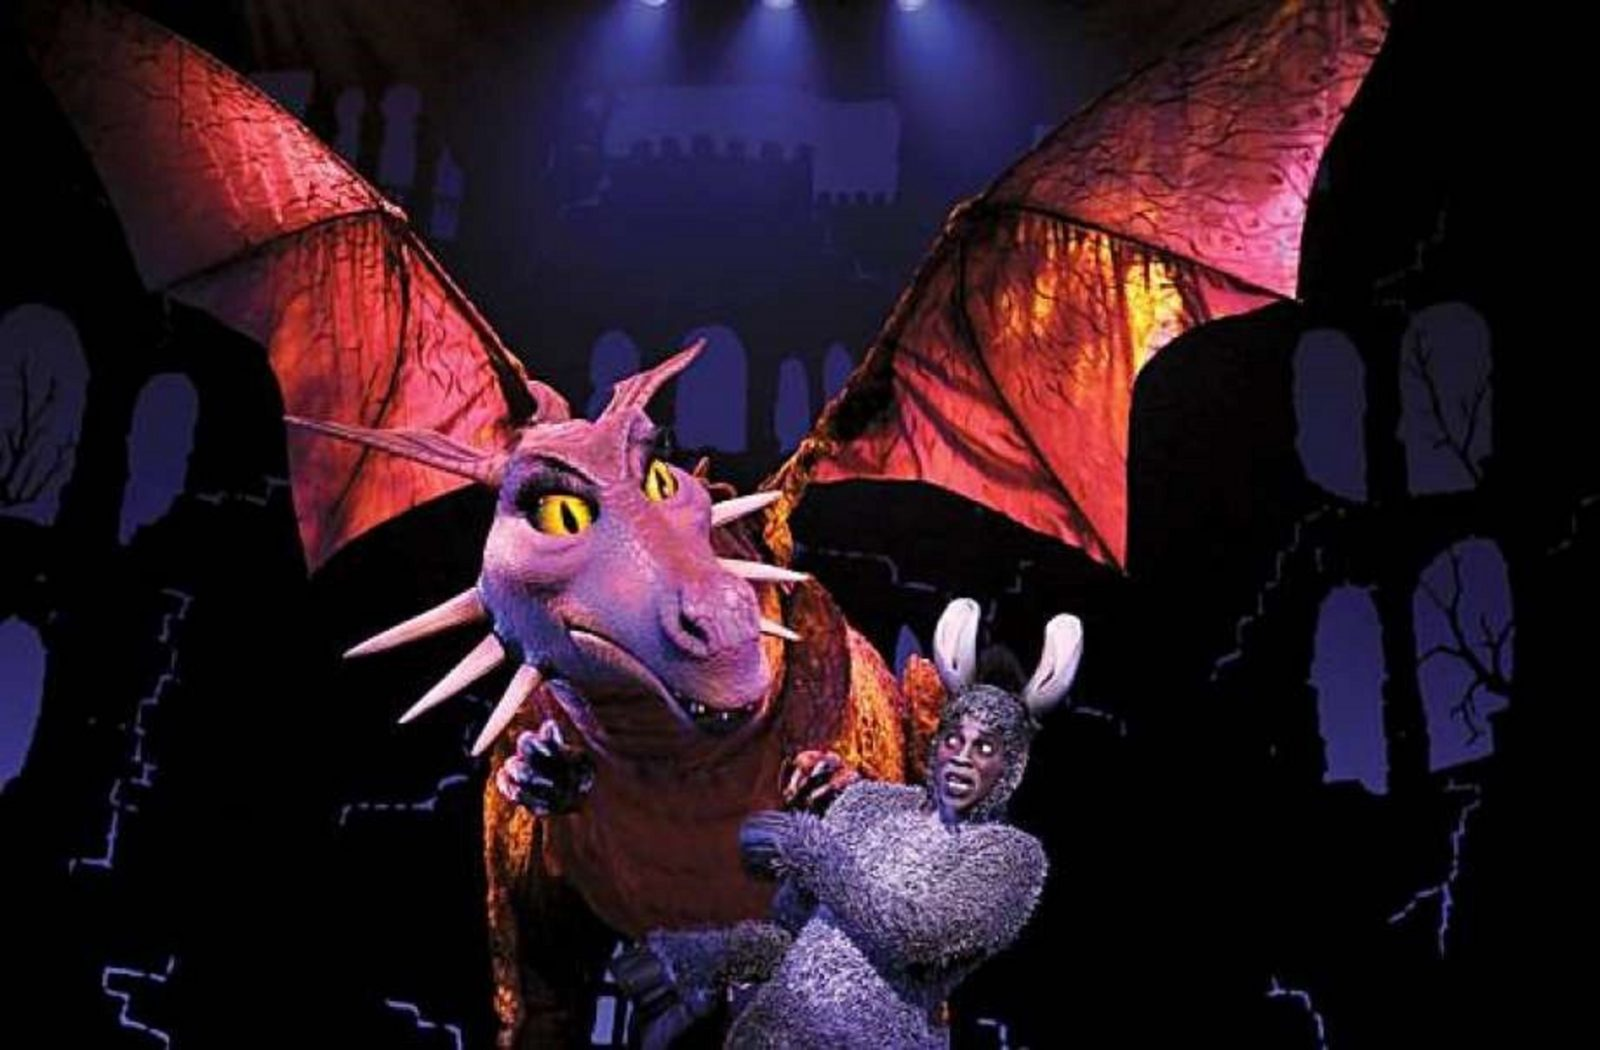 production image of donkey cowering away from large dragon puppet looking down at him